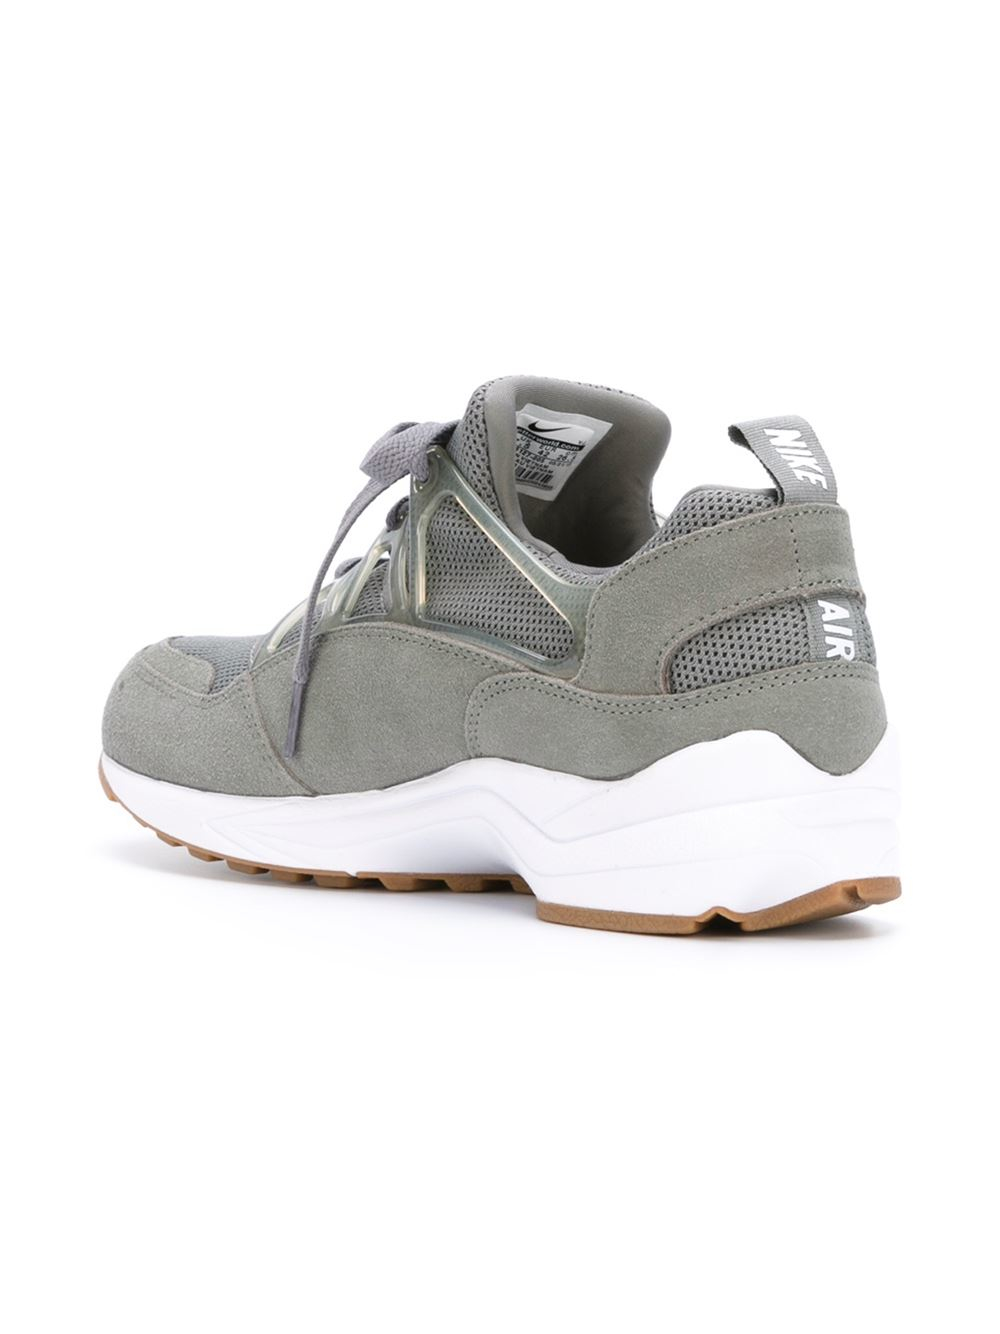 nike 39 air huarache light 39 sneakers in gray for men lyst. Black Bedroom Furniture Sets. Home Design Ideas